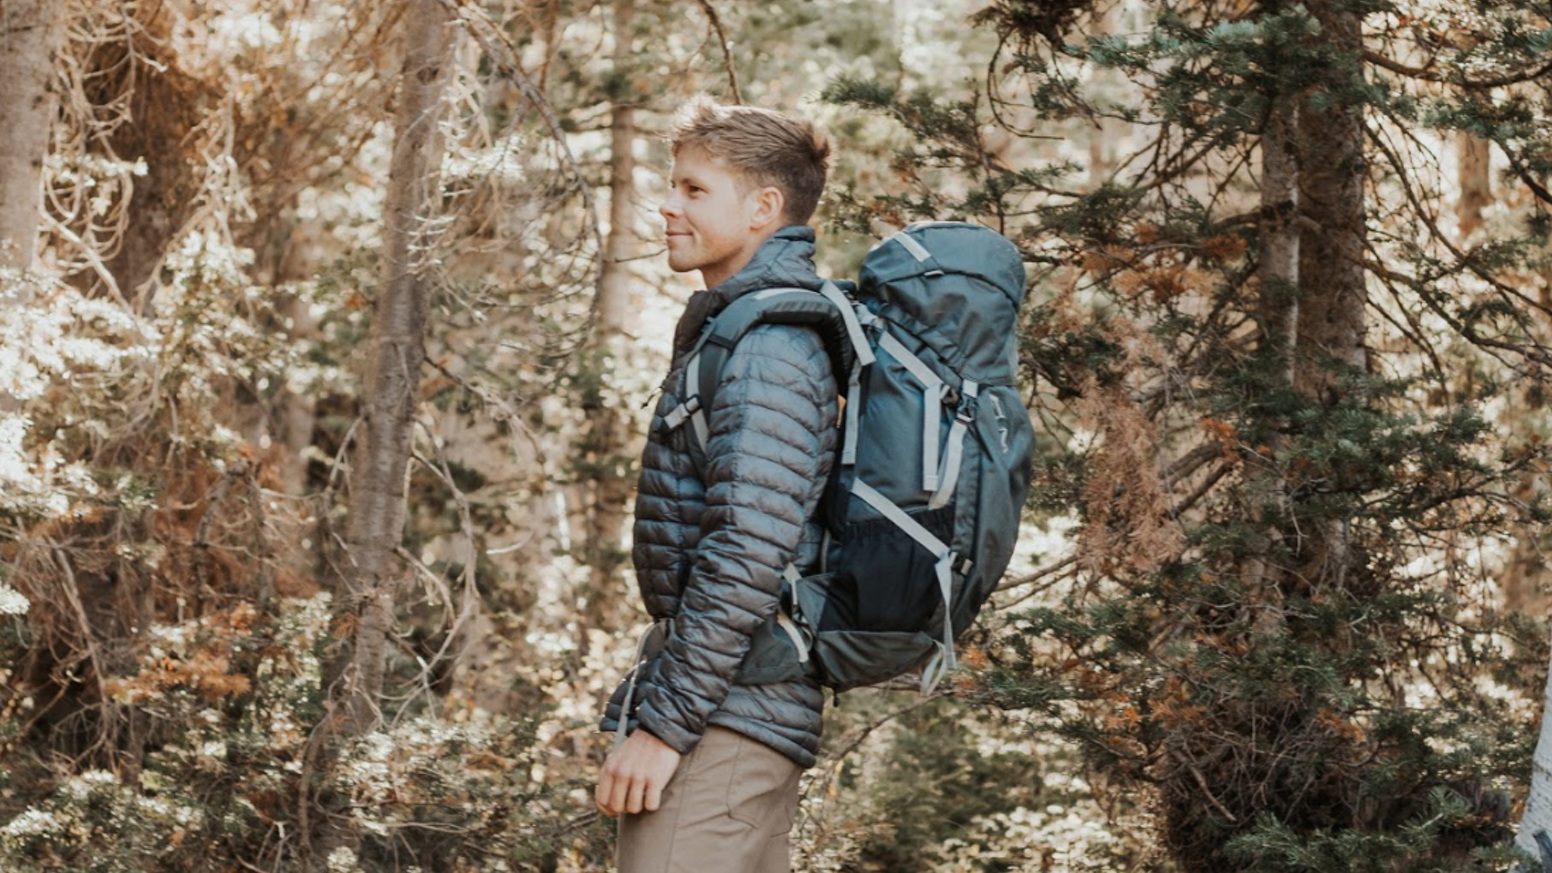 Ultralight, packable, ready for the harshest weather conditions without sacrificing warmth, performance, or affordability.